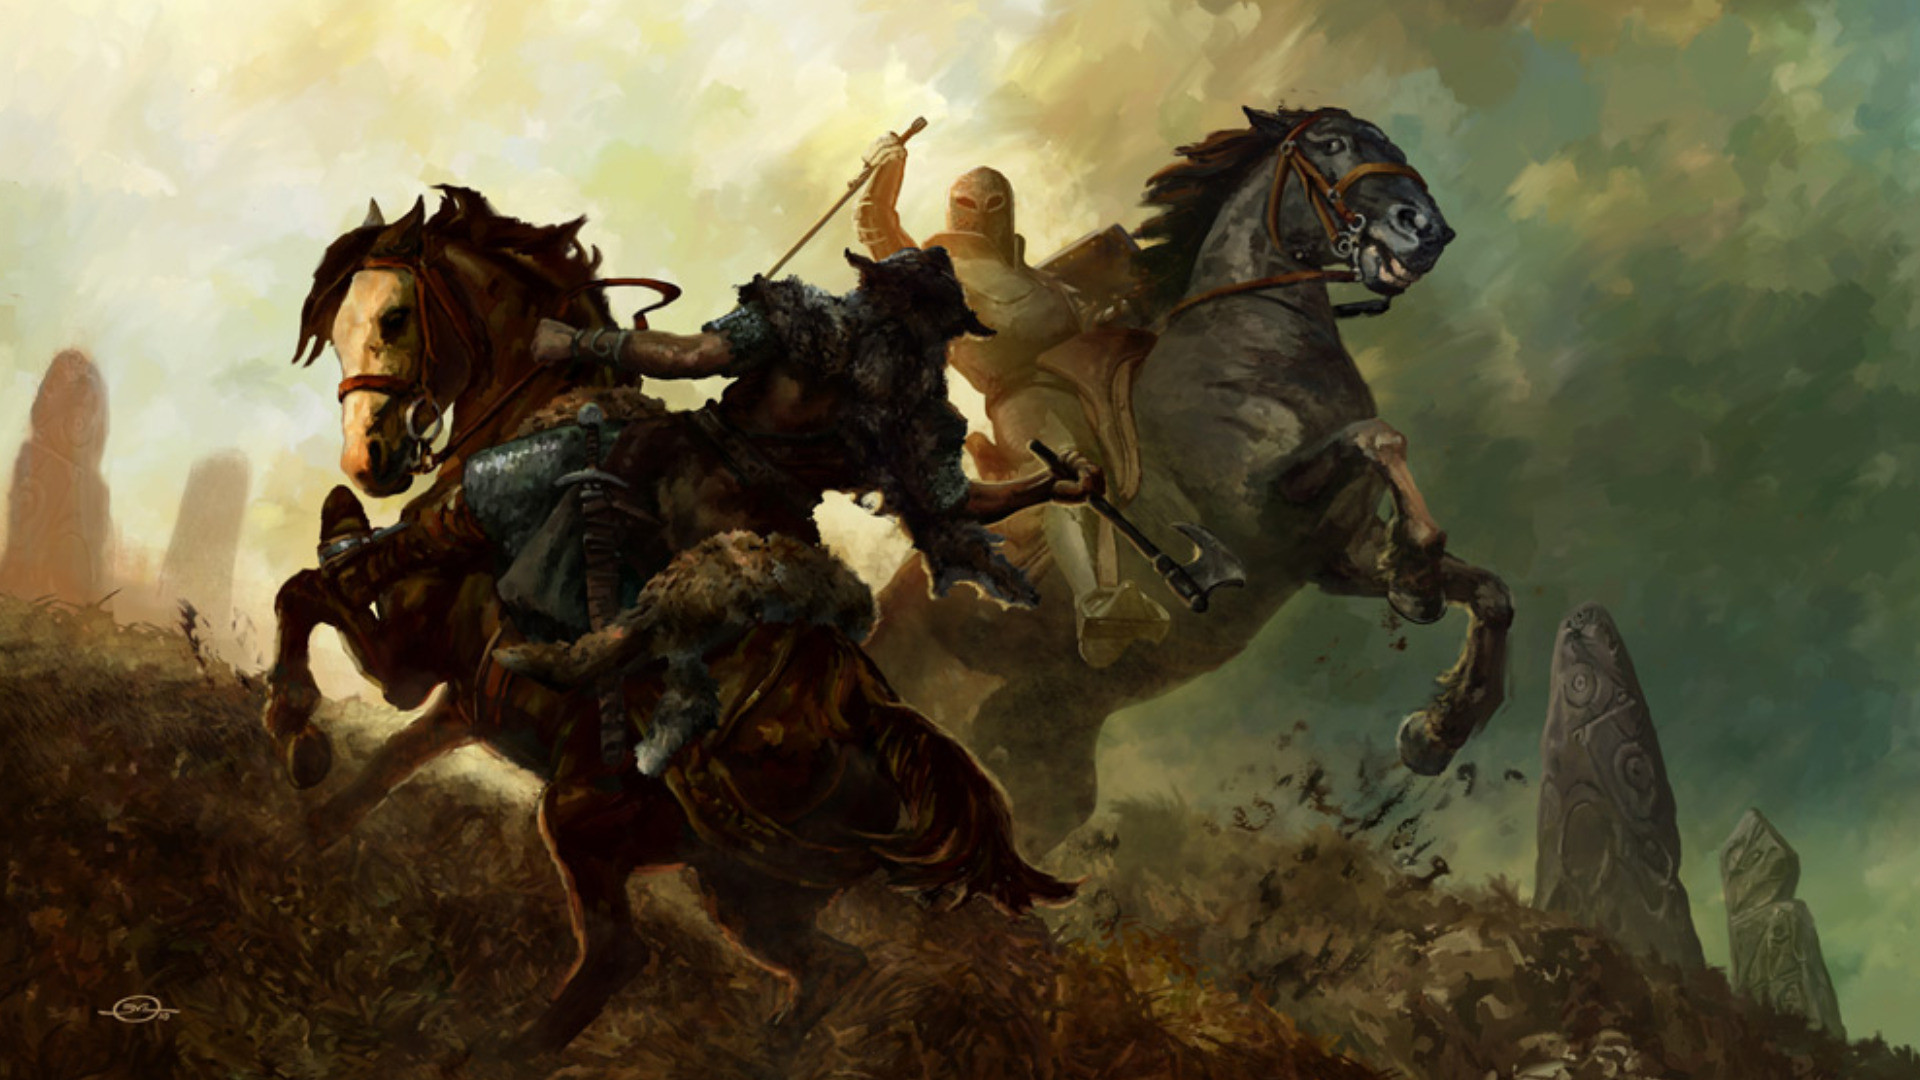 Macbeth Wallpaper For Iphone Medieval Battle Wallpaper 70 Images